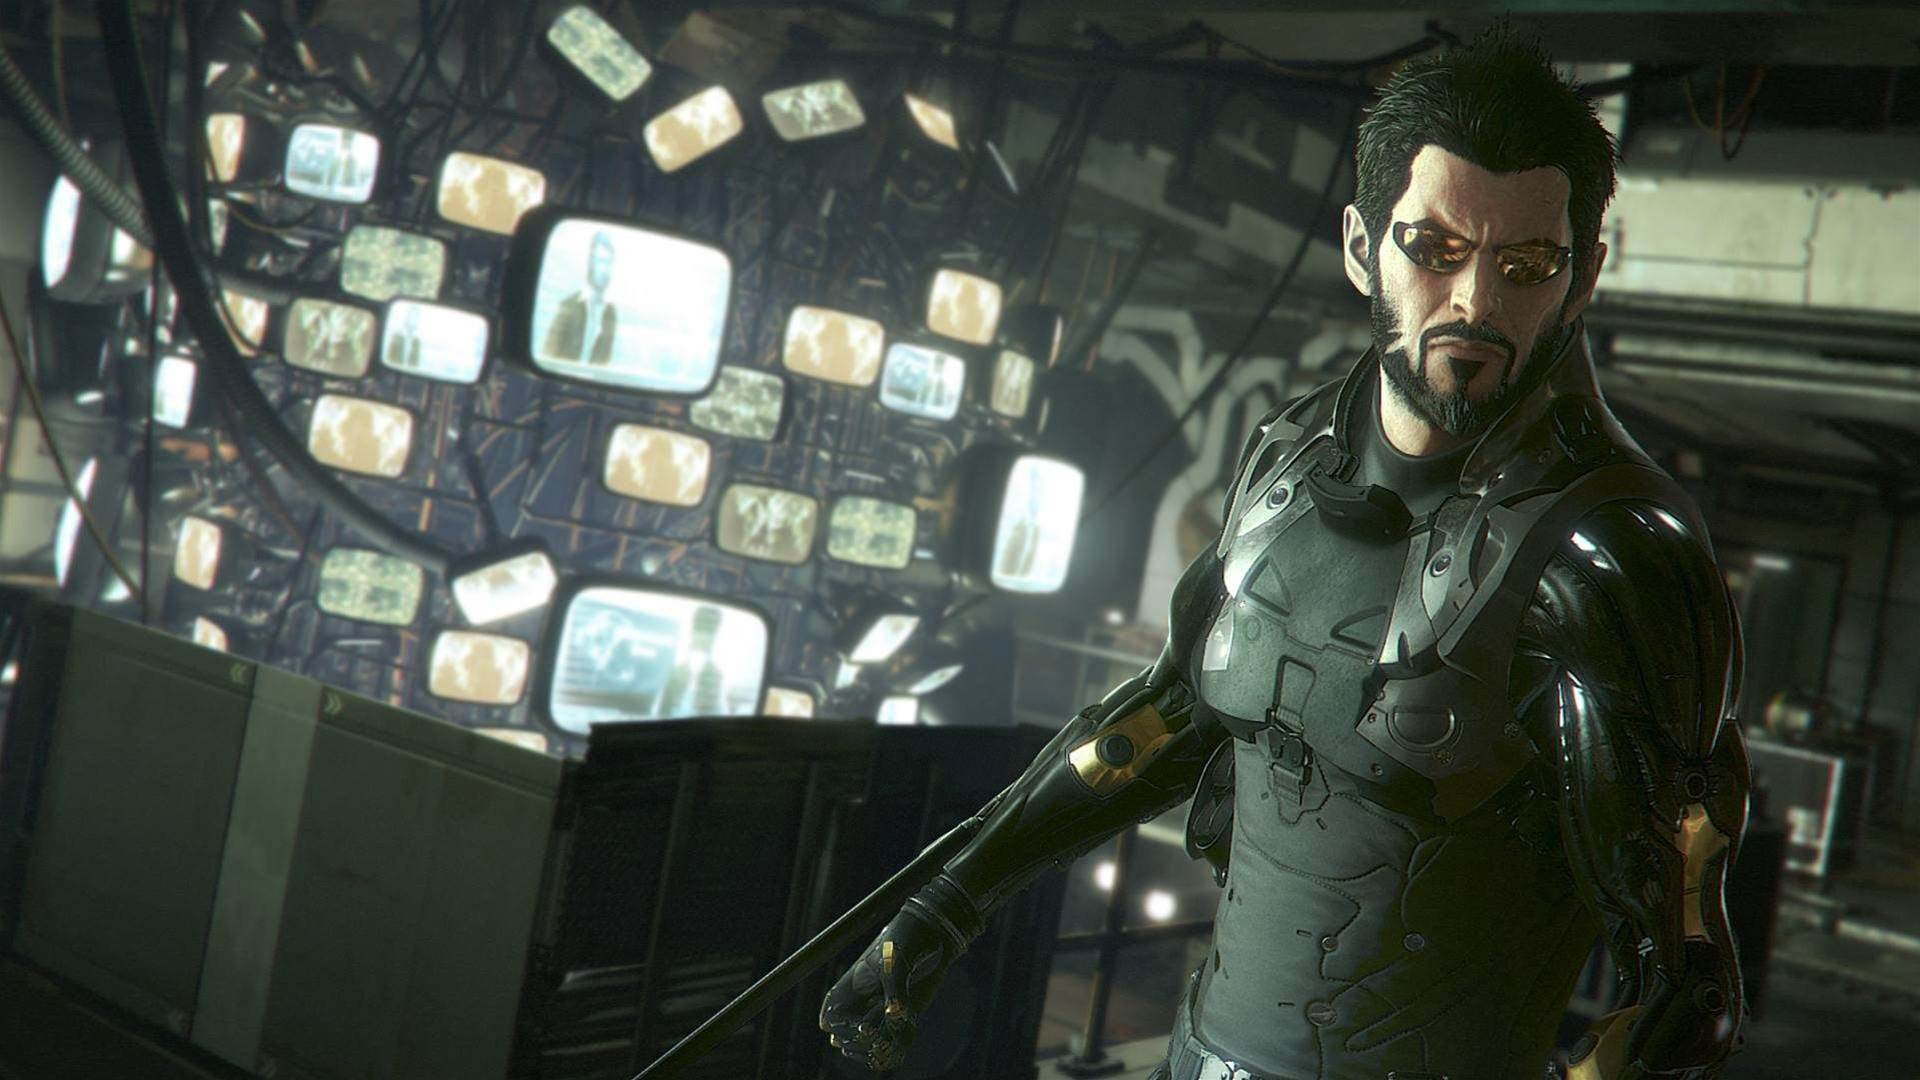 E3 2016 - Deus Ex: Mankind Divided screenshots